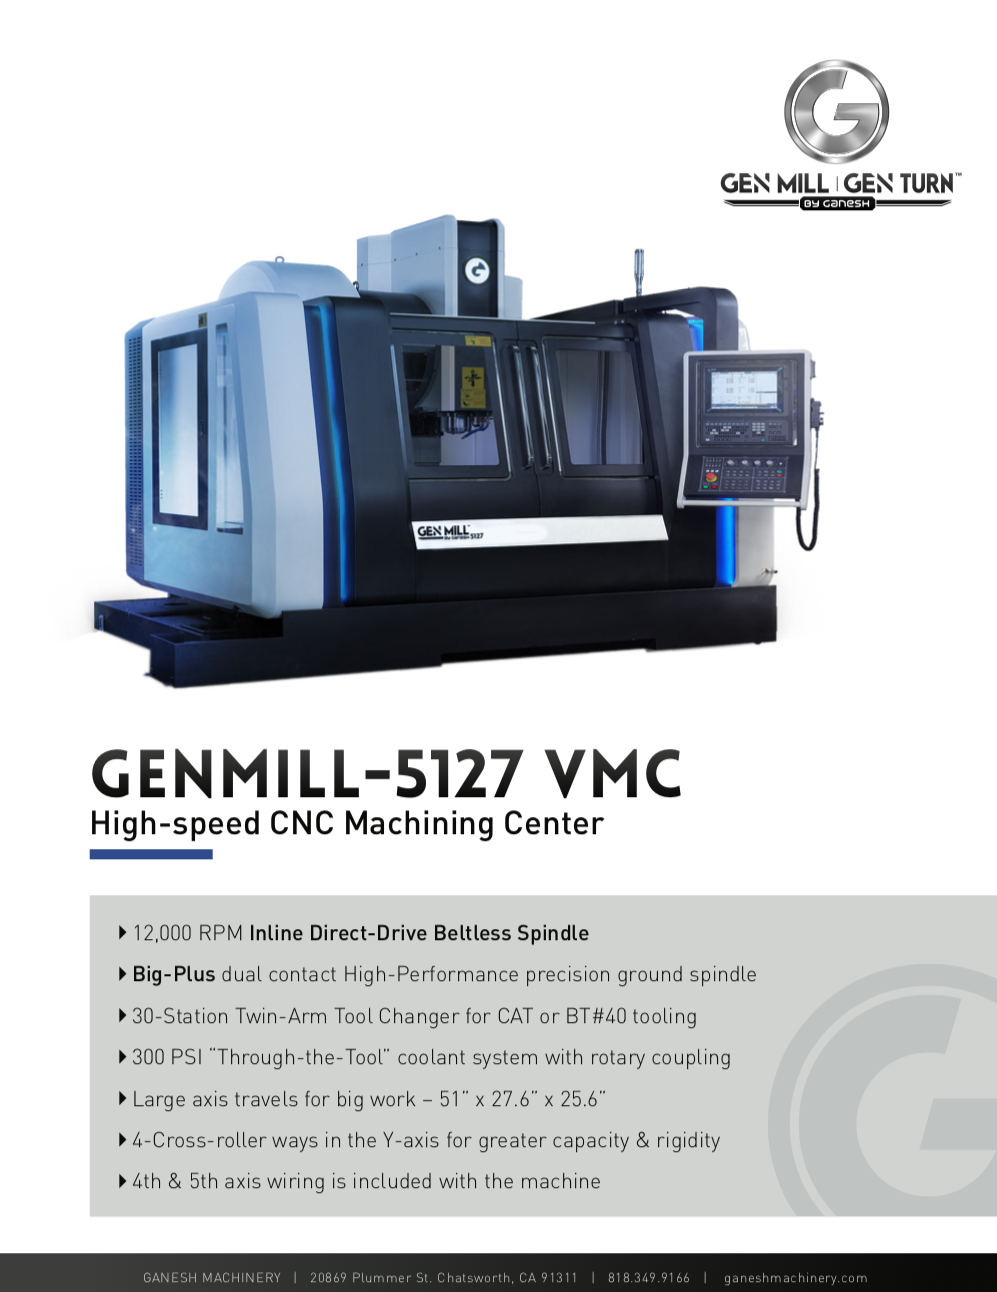 GENMILL 5127 Quote